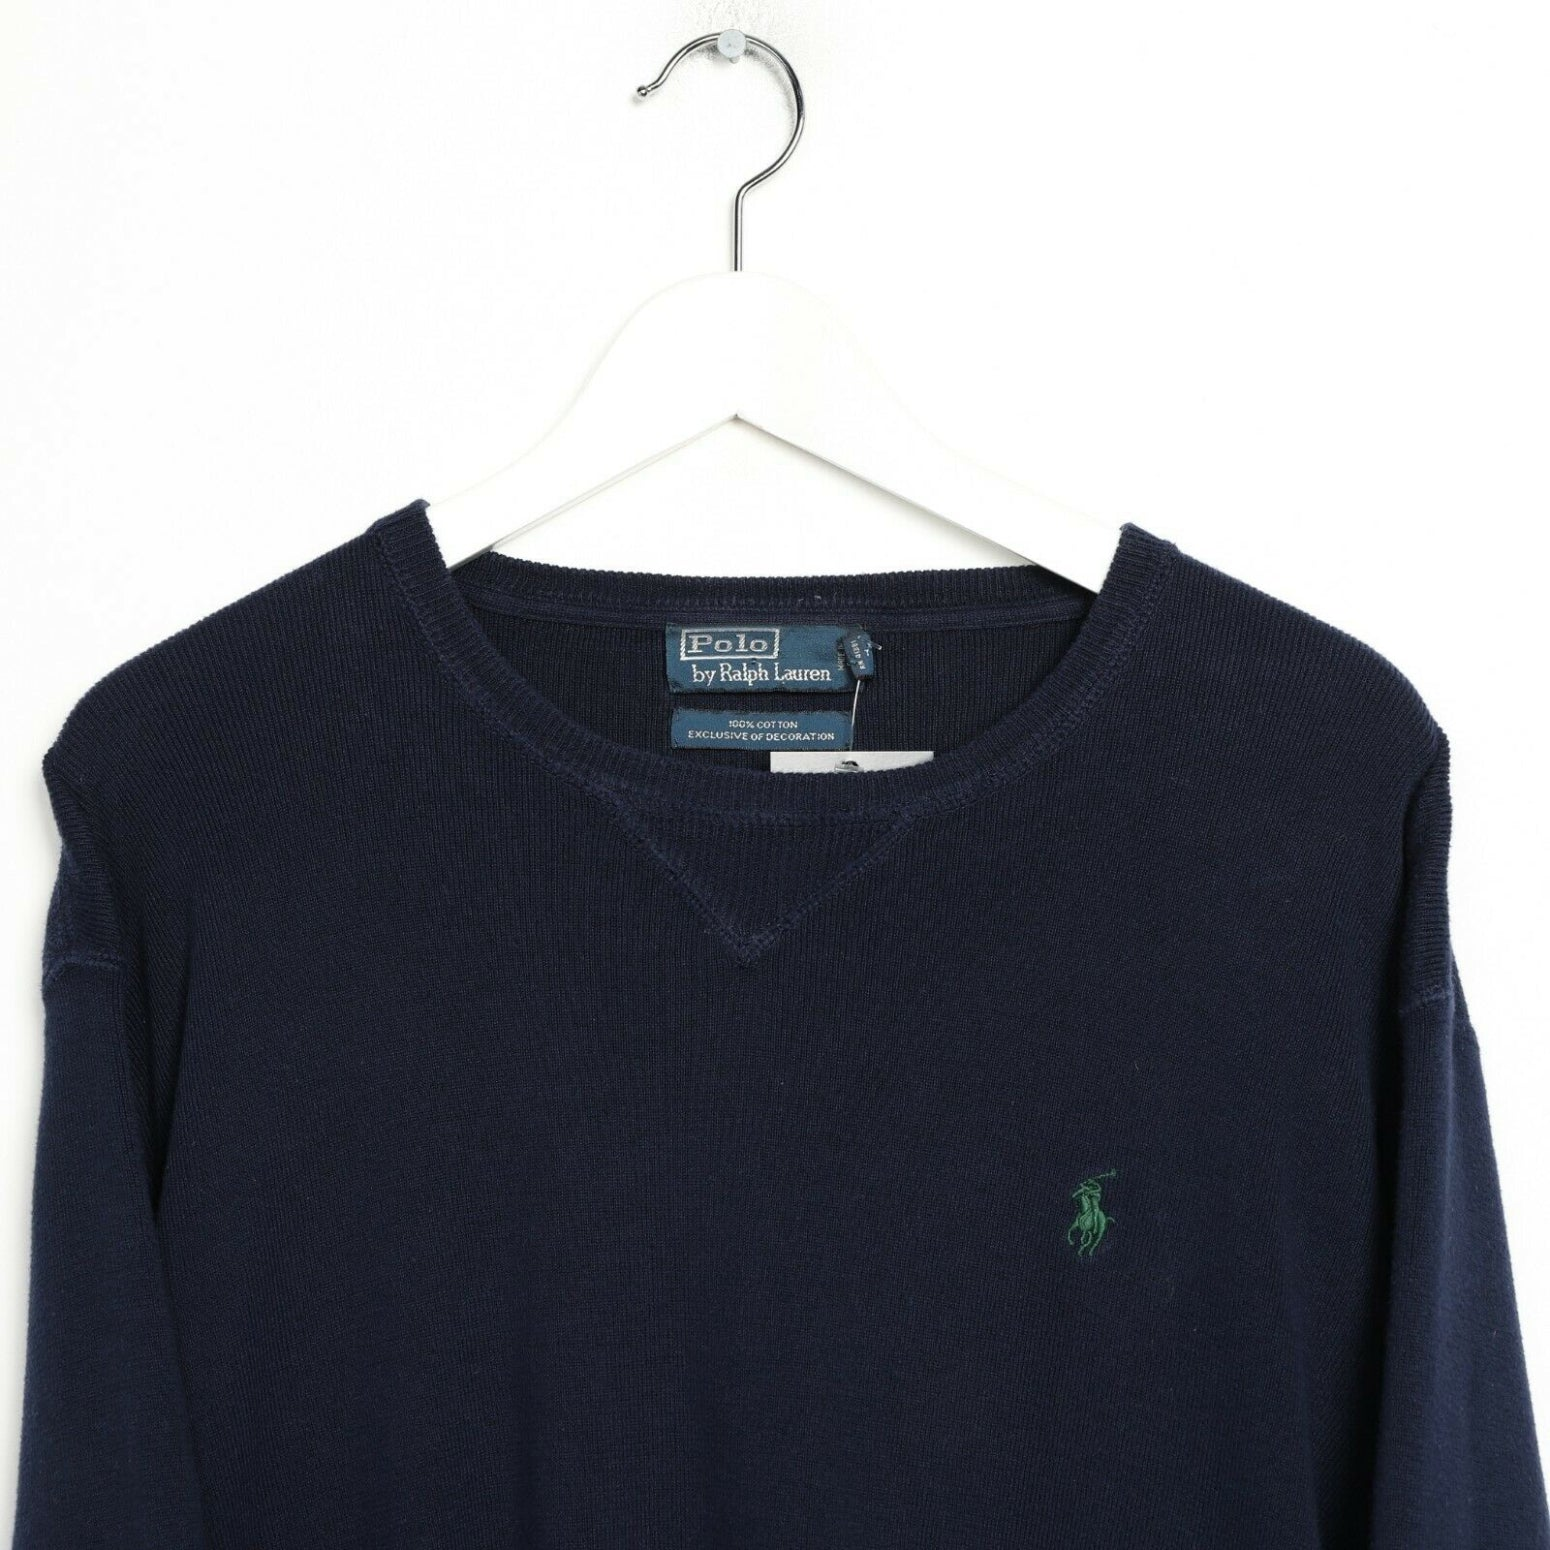 Vintage RALPH LAUREN Small Logo Lightweight Sweatshirt Navy Blue Large L